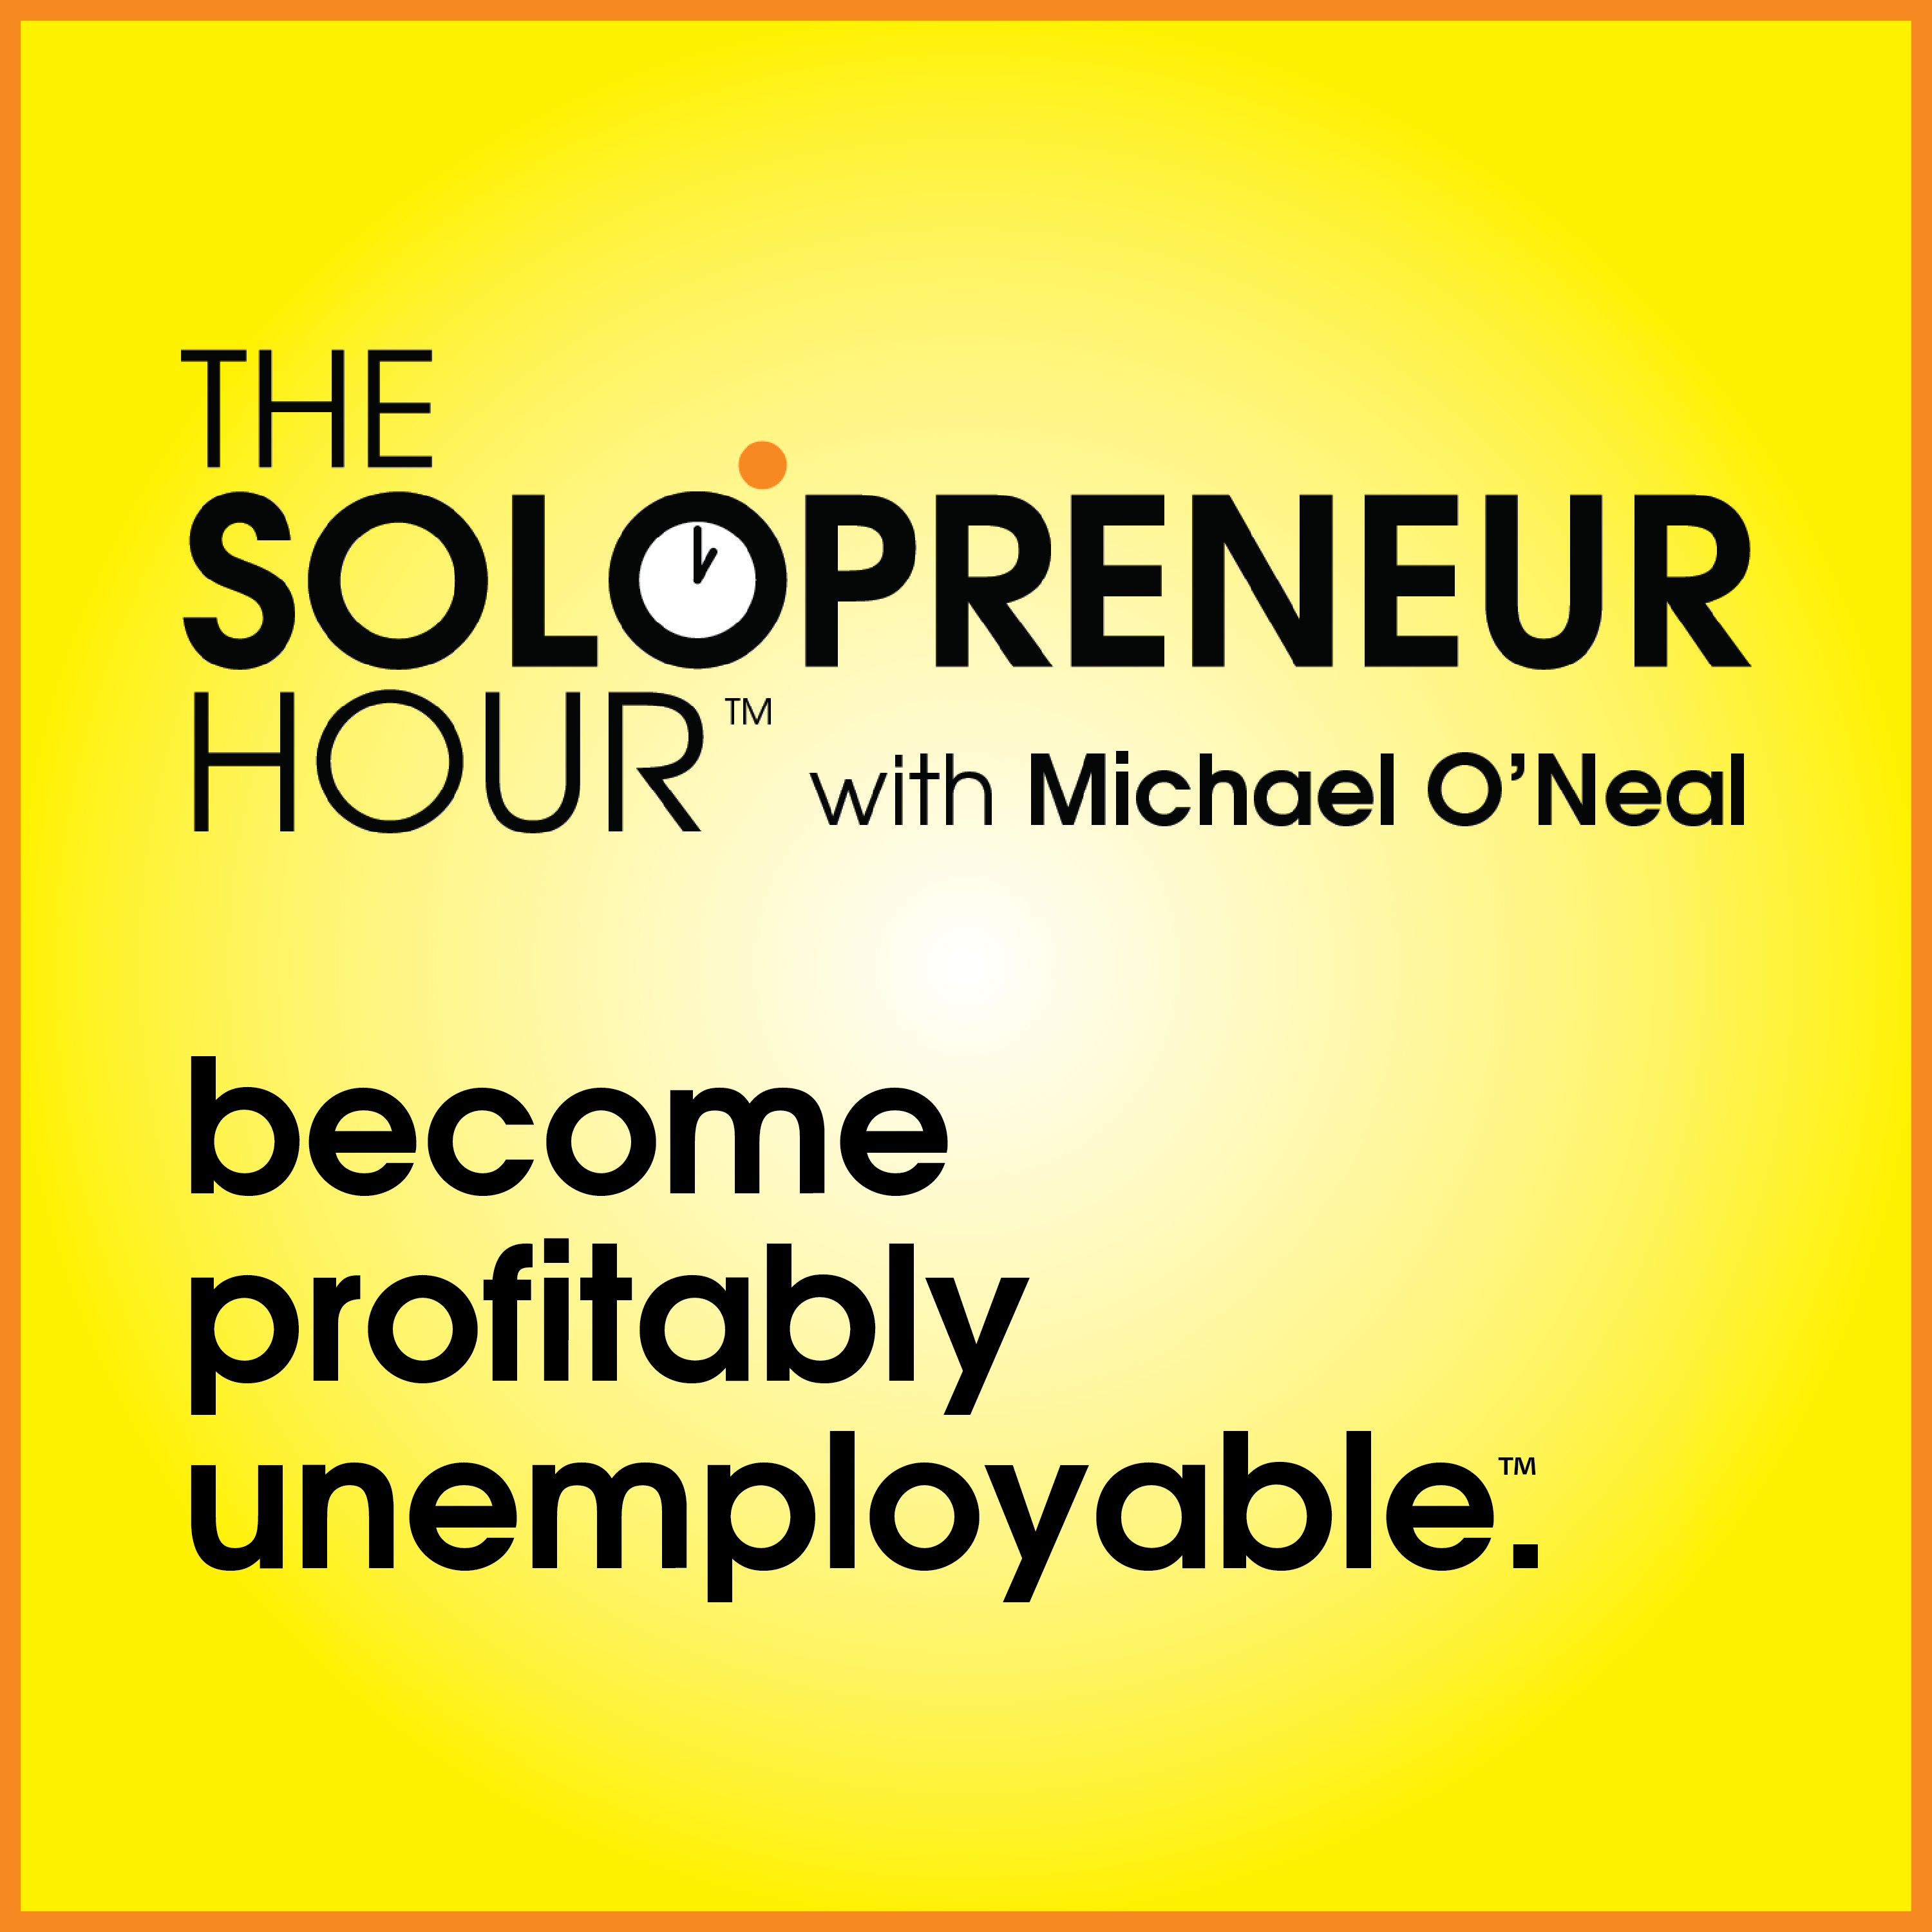 The Solopreneur Hour Podcast with Michael O'Neal - Proudly Unemployable™